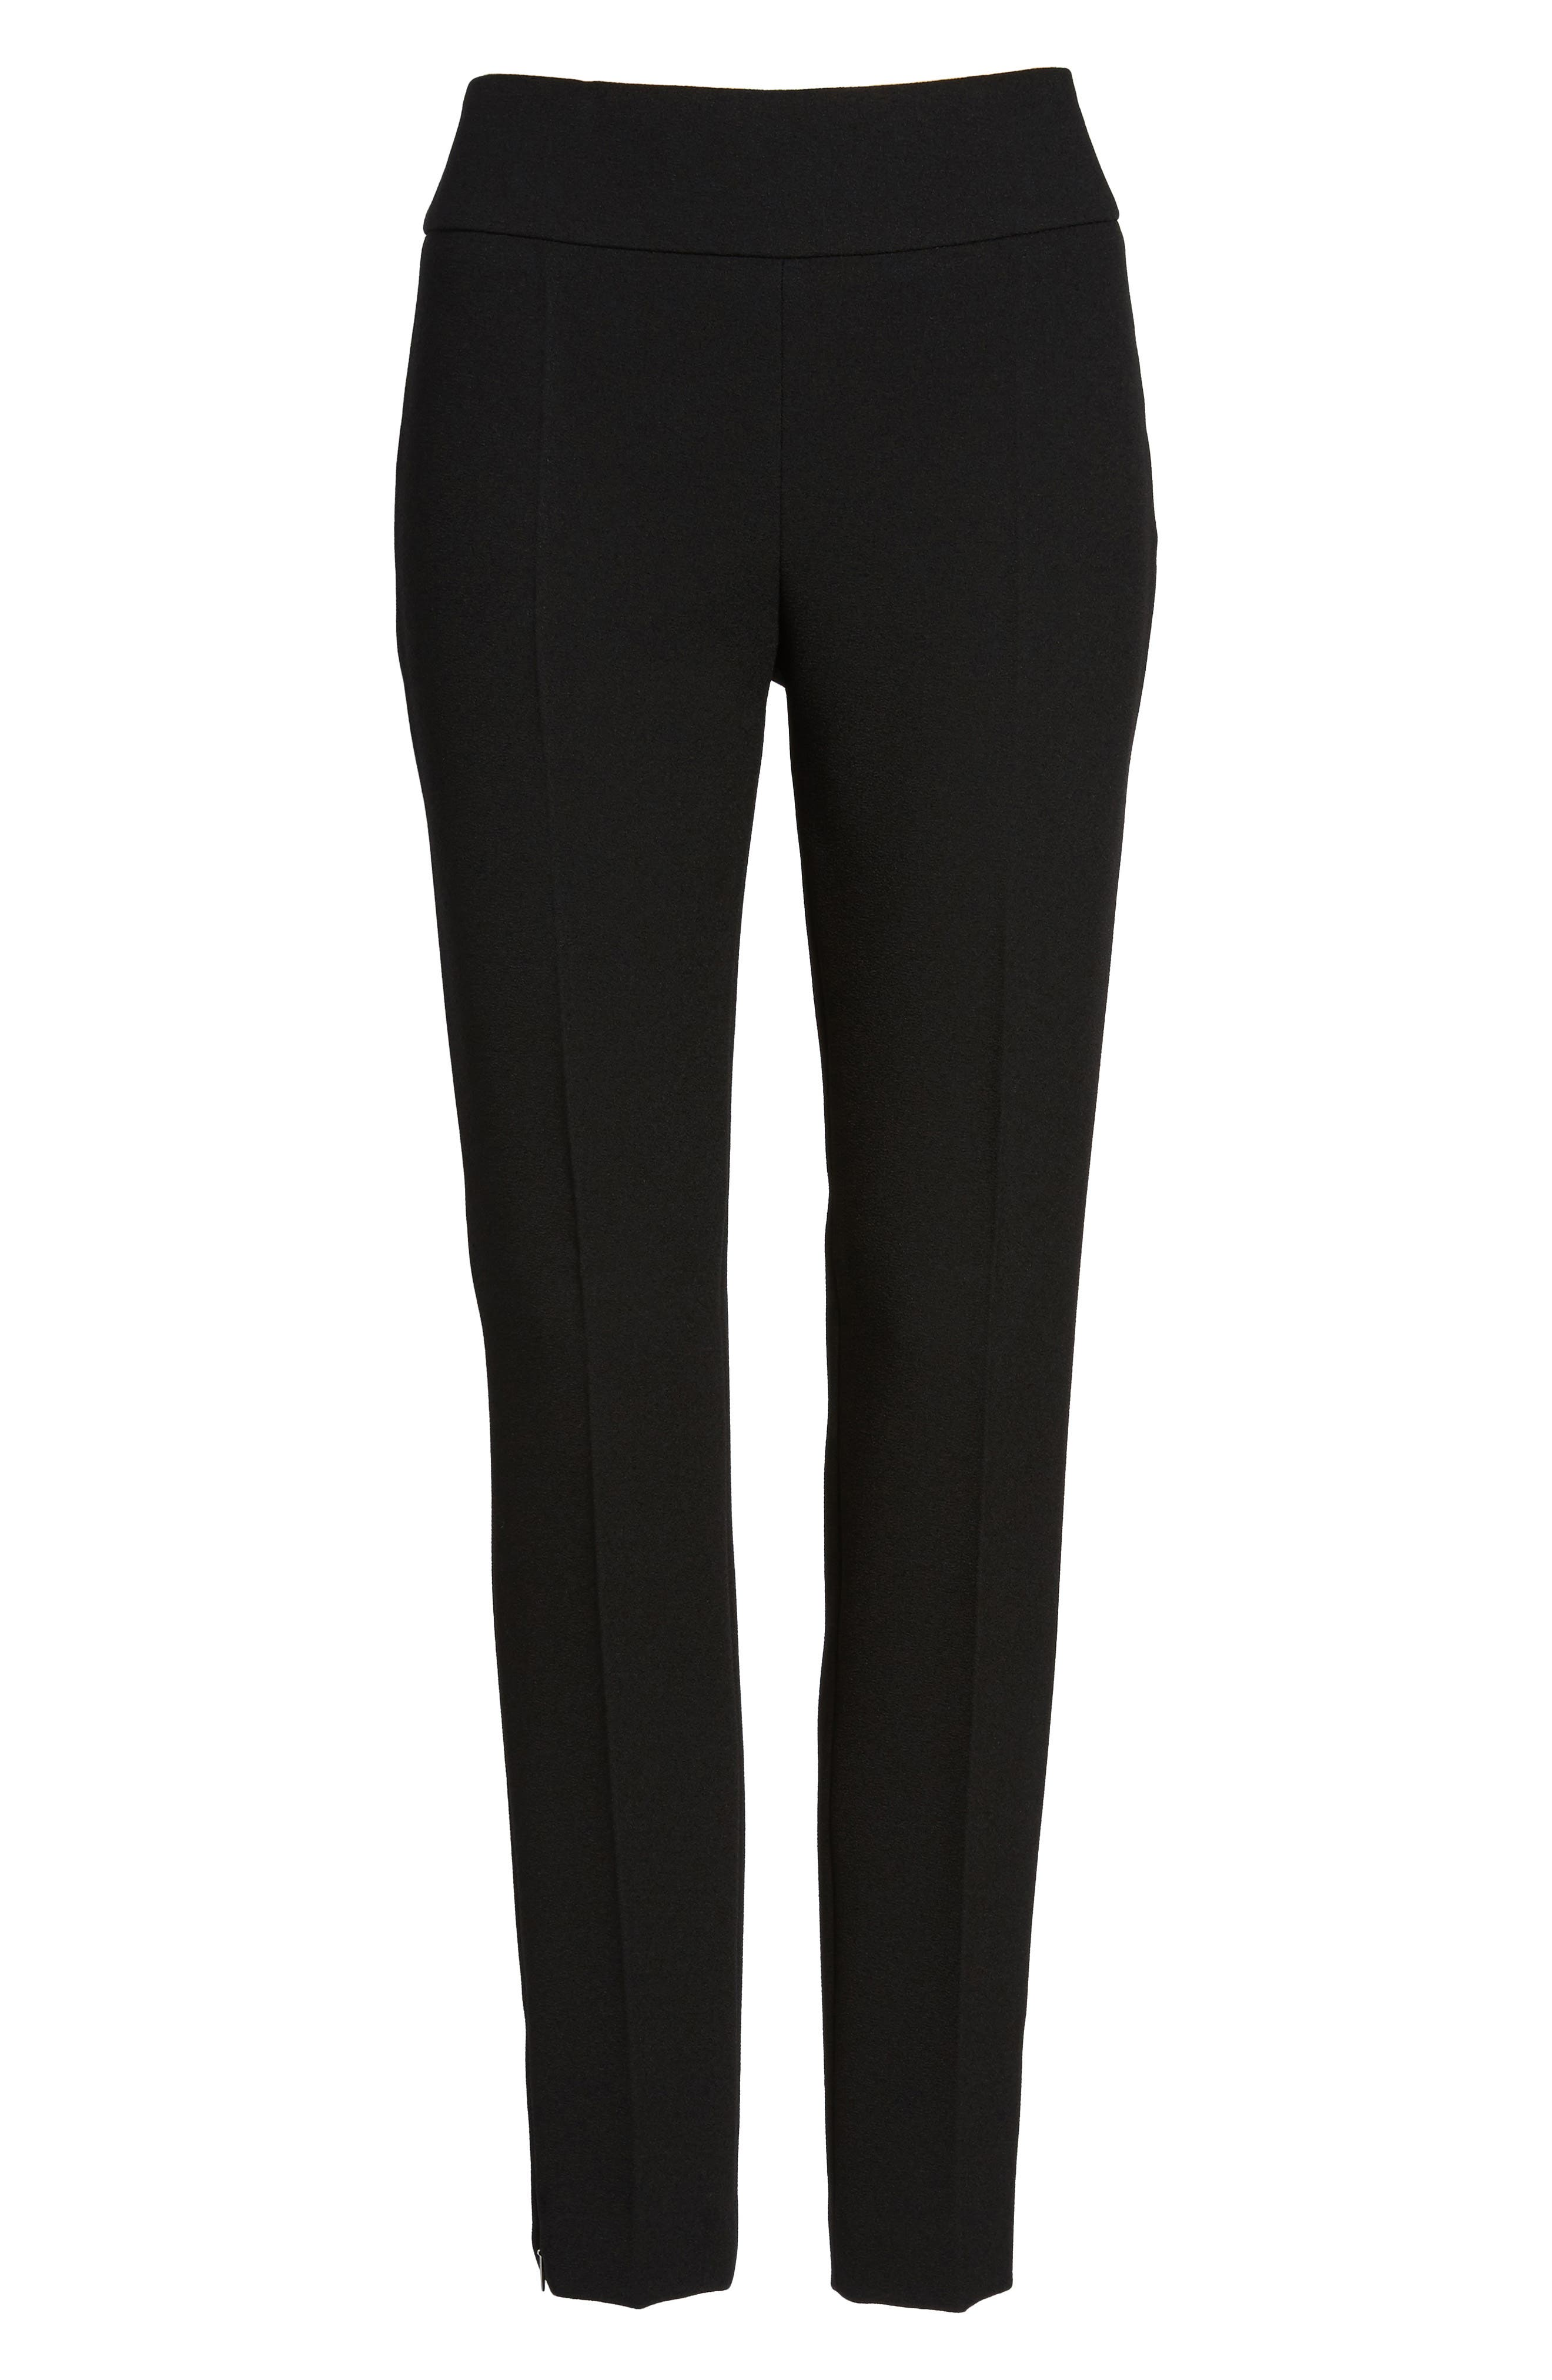 Timalea Compact Crepe Side Zip Slim Leg Trousers,                             Alternate thumbnail 7, color,                             001